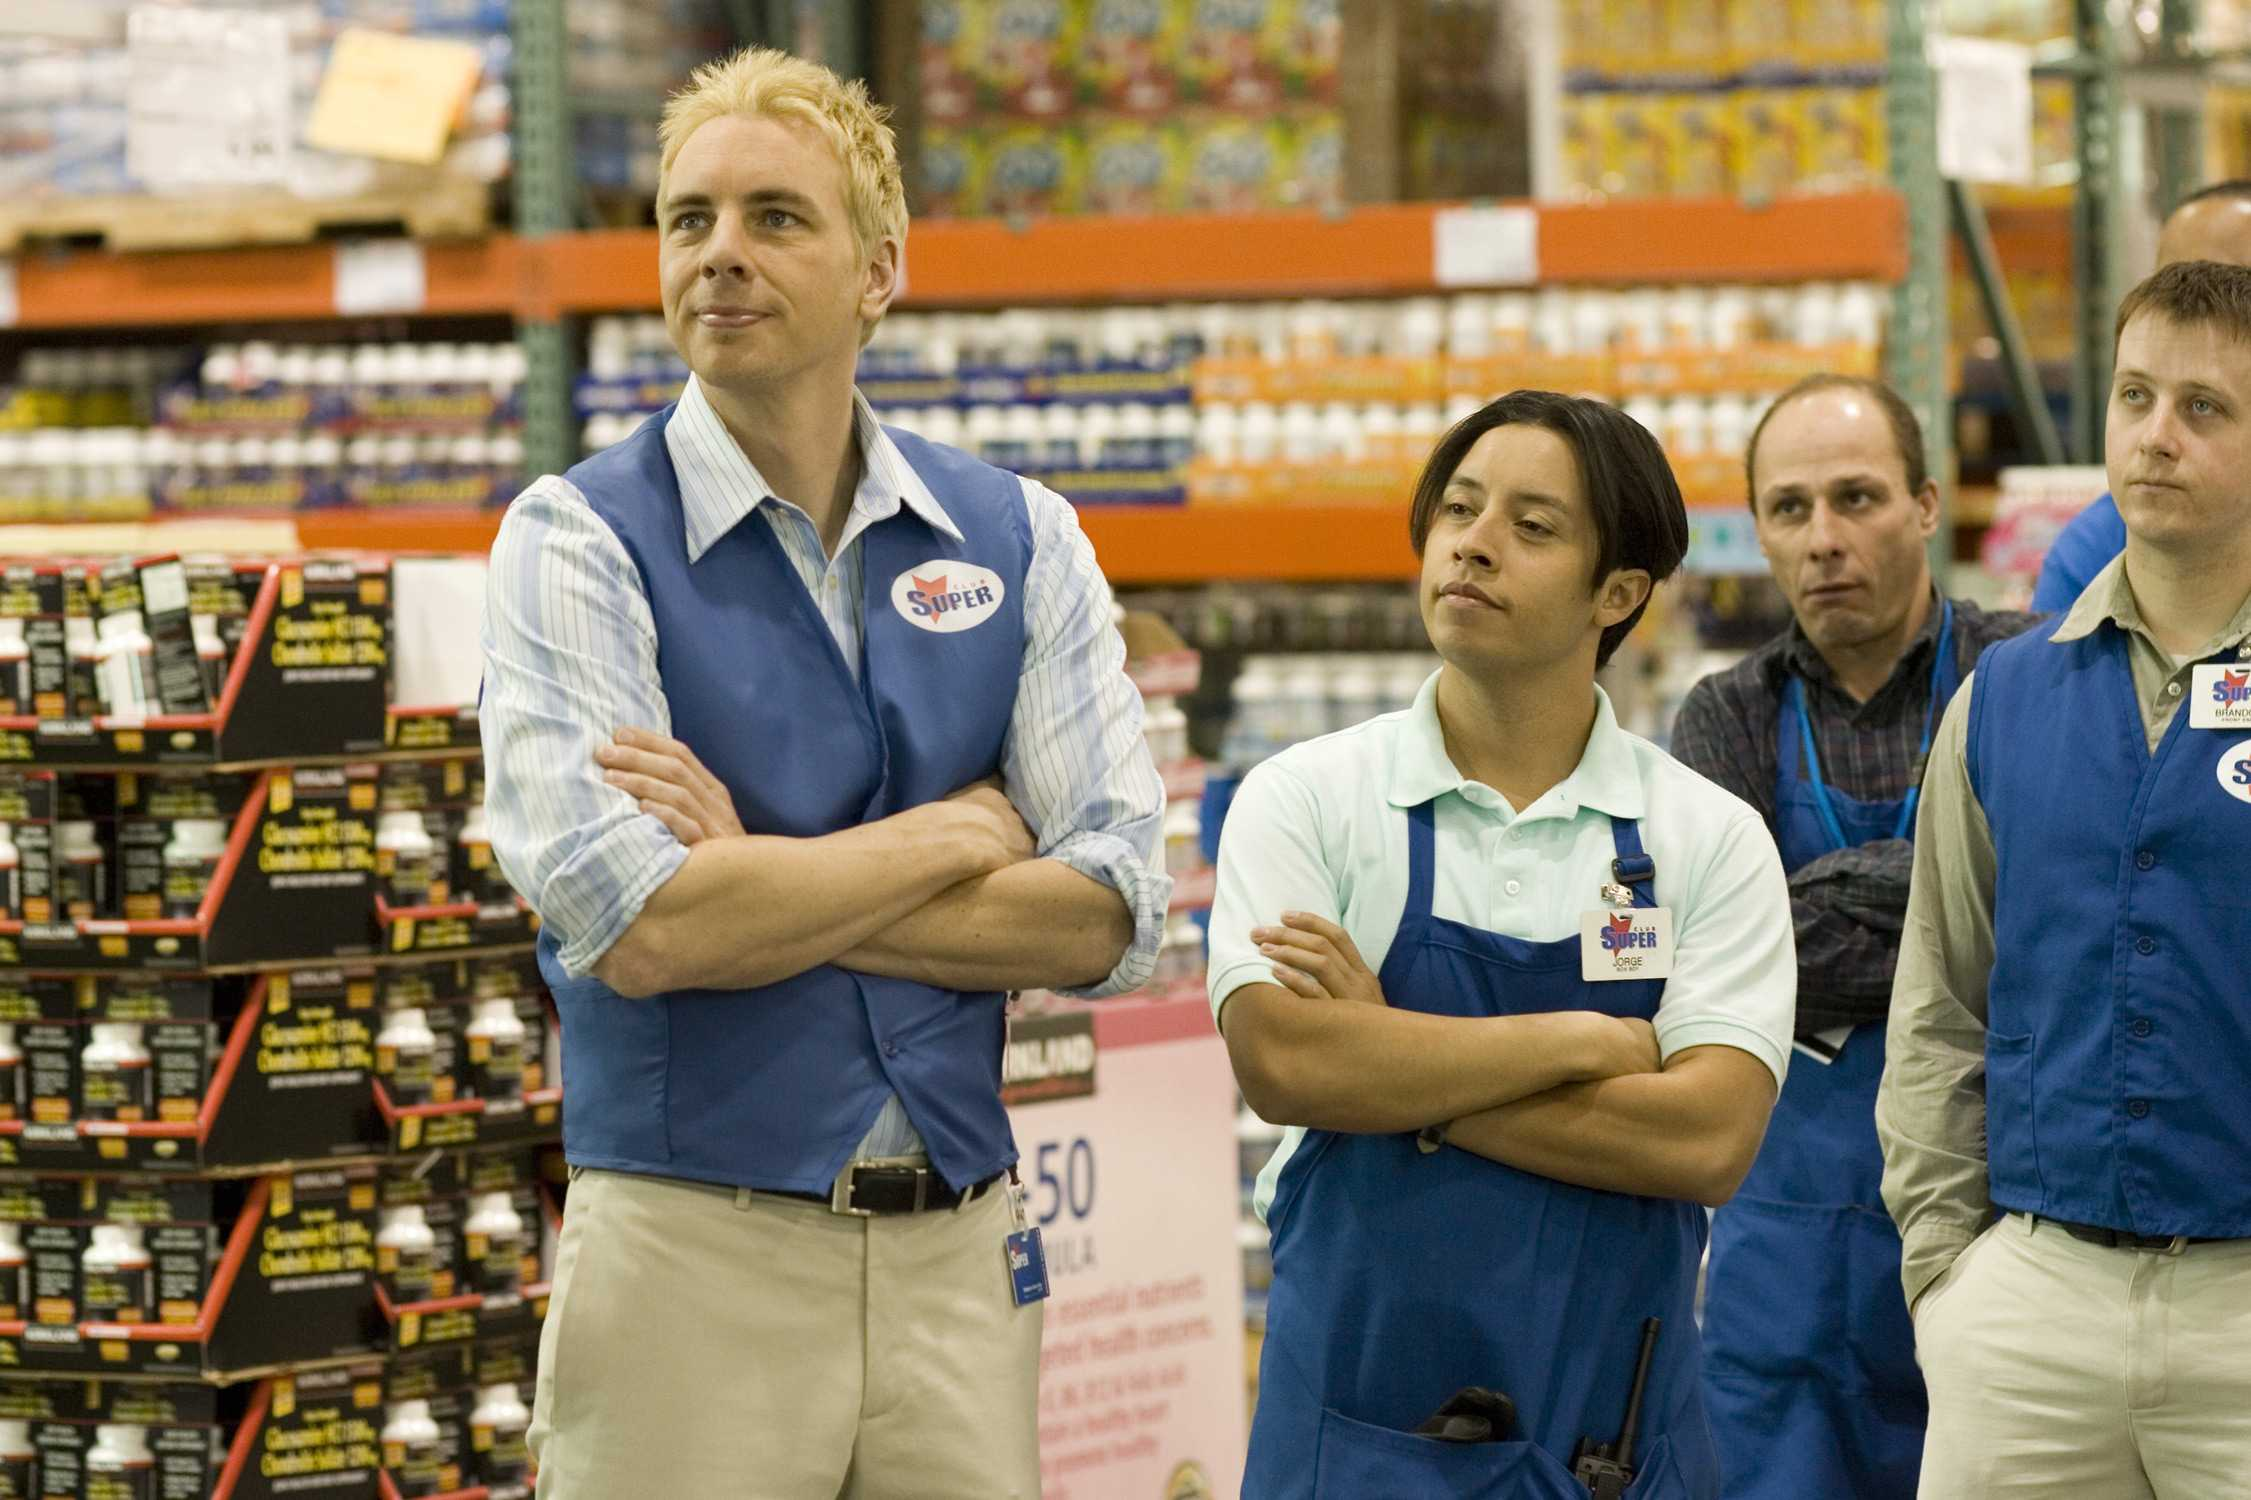 employee of the month - dax shepard photo  31245677